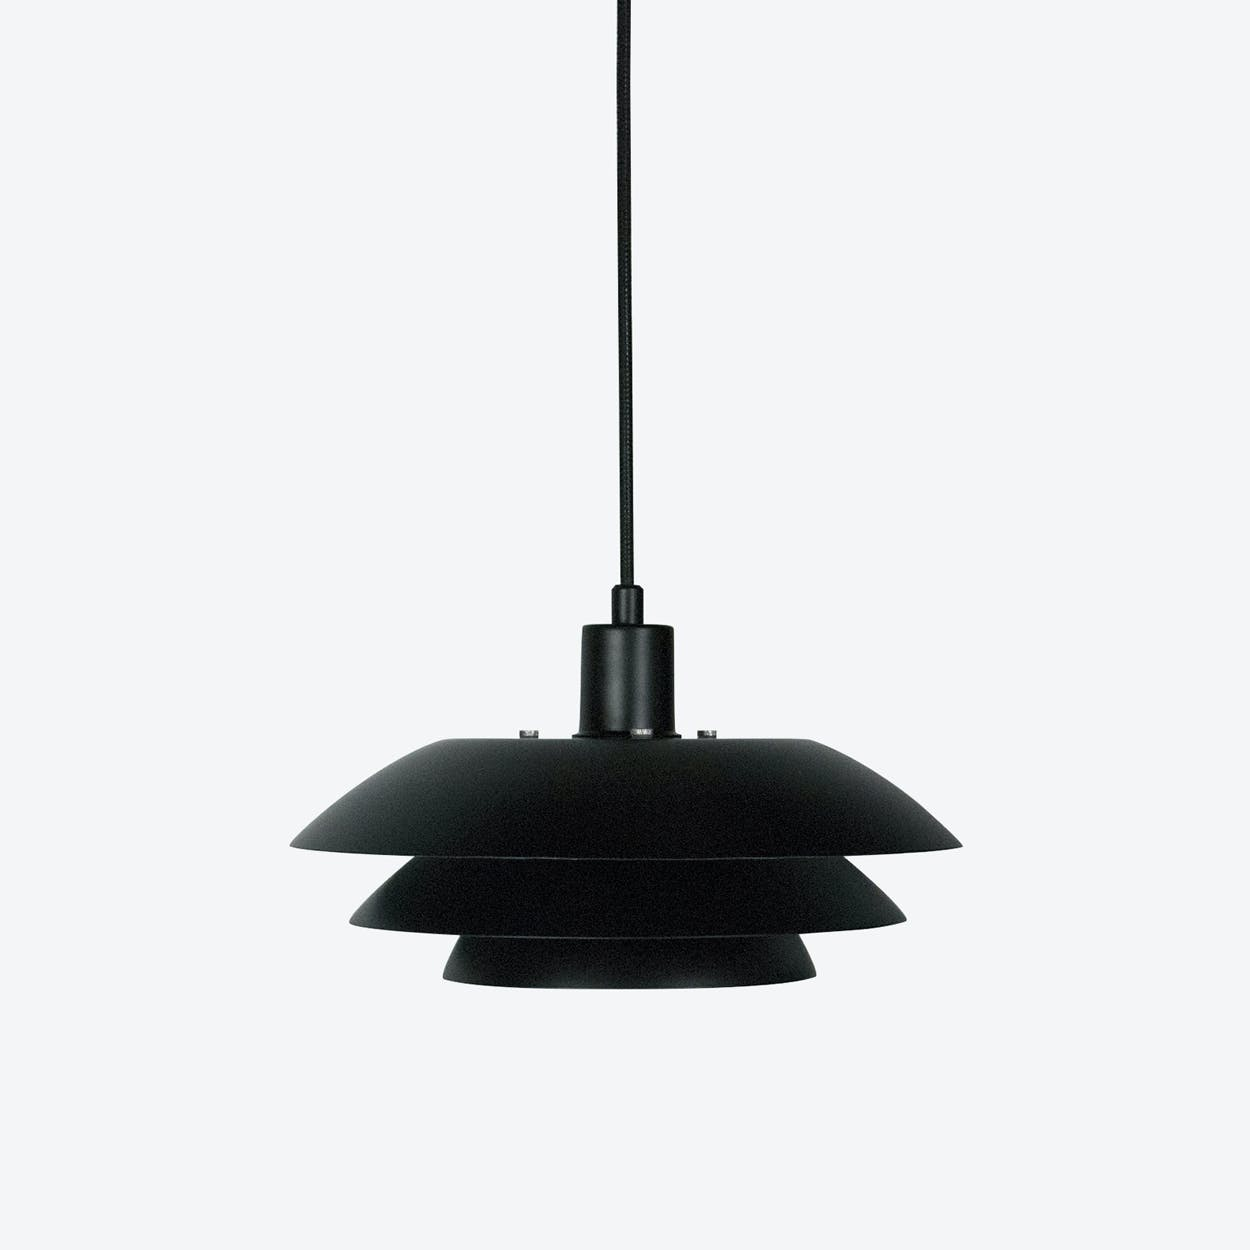 DL31 Pendant Lamp in Matte Black